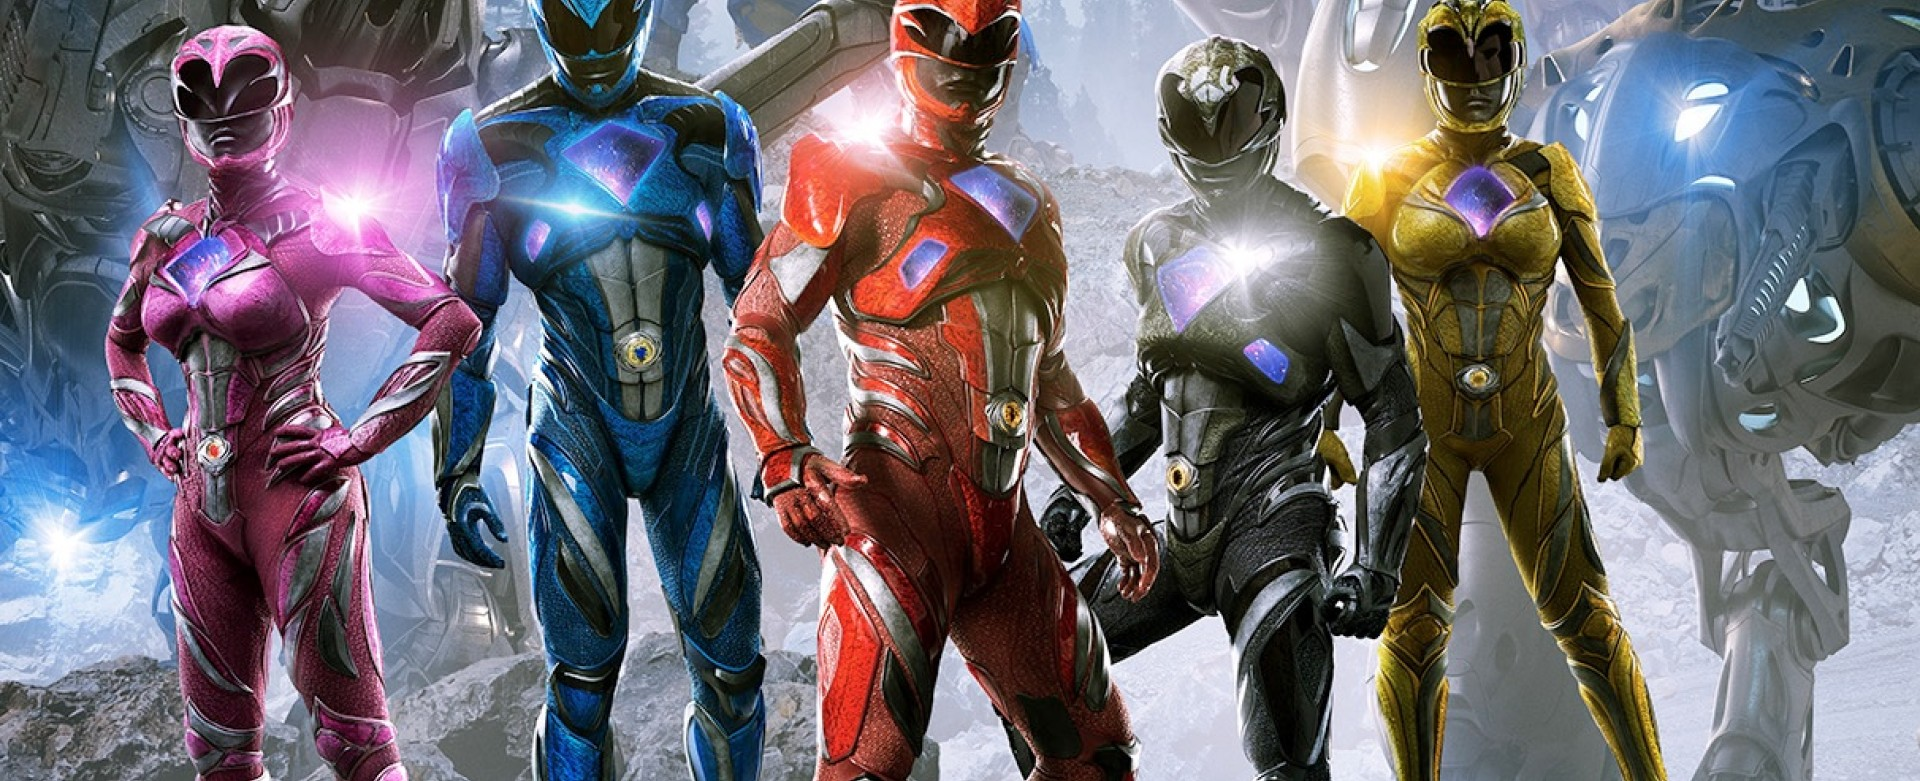 Power Rangers - 2D | 23/03/2017